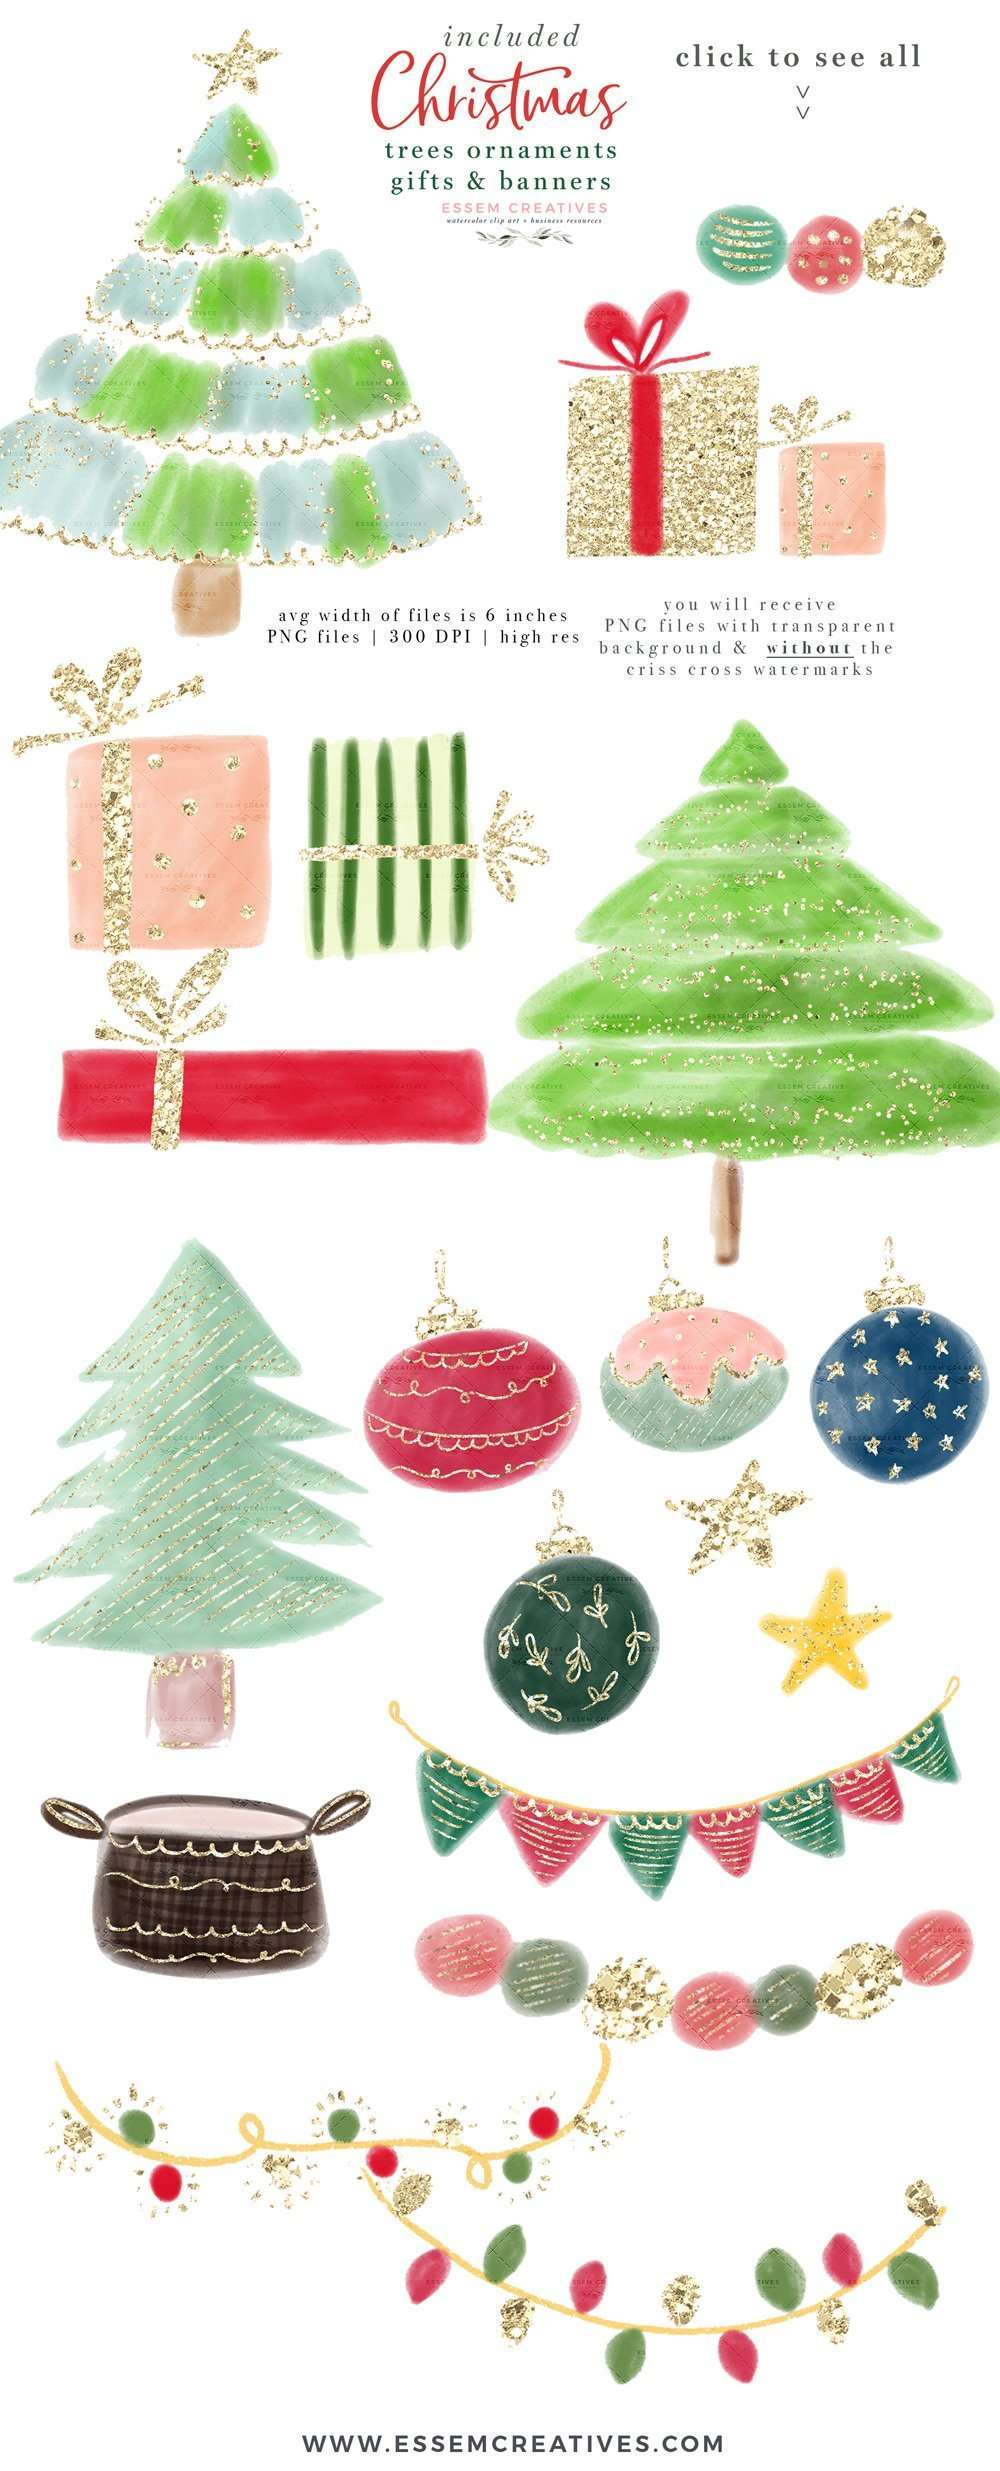 Christmas Tree Clipart Tree Decorations Ornaments Gifts Buntings Sublimation Design Transfer Png Essem Creatives Watercolor Clipart Business